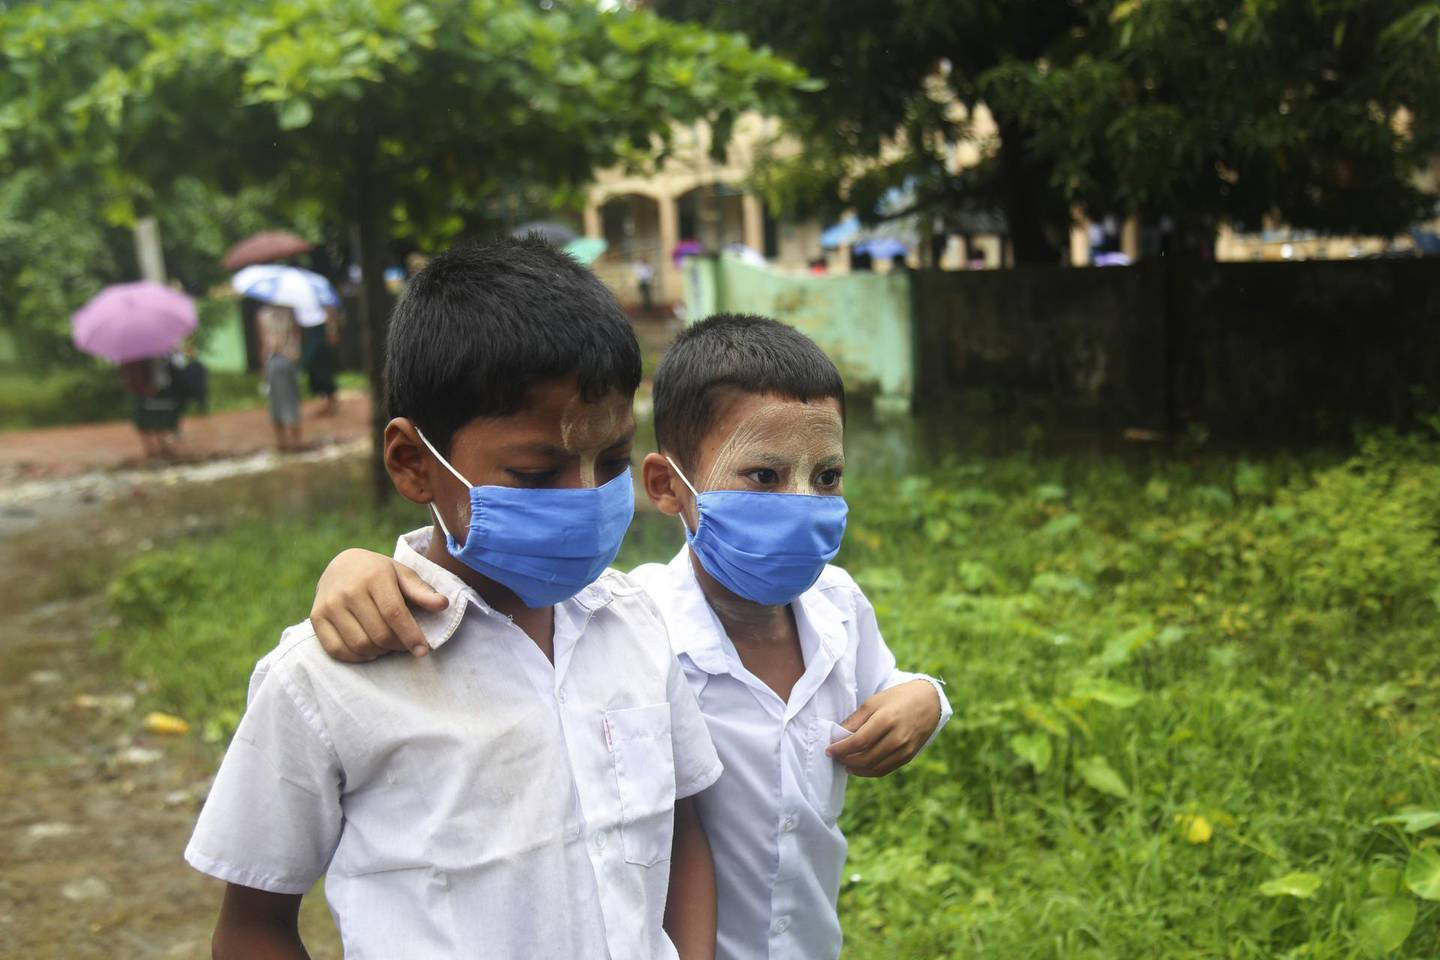 epa09298214 Students wearing face masks leave form Min Gan primary school in Sittwe, Rakhine State, western Myanmar, 24 June 2021. According to a report from the Ministry of Health and Sports, cases of coronavirus disease (COVID-19) are on the rise in Myanmar's Rakhine State.  EPA/STRINGER